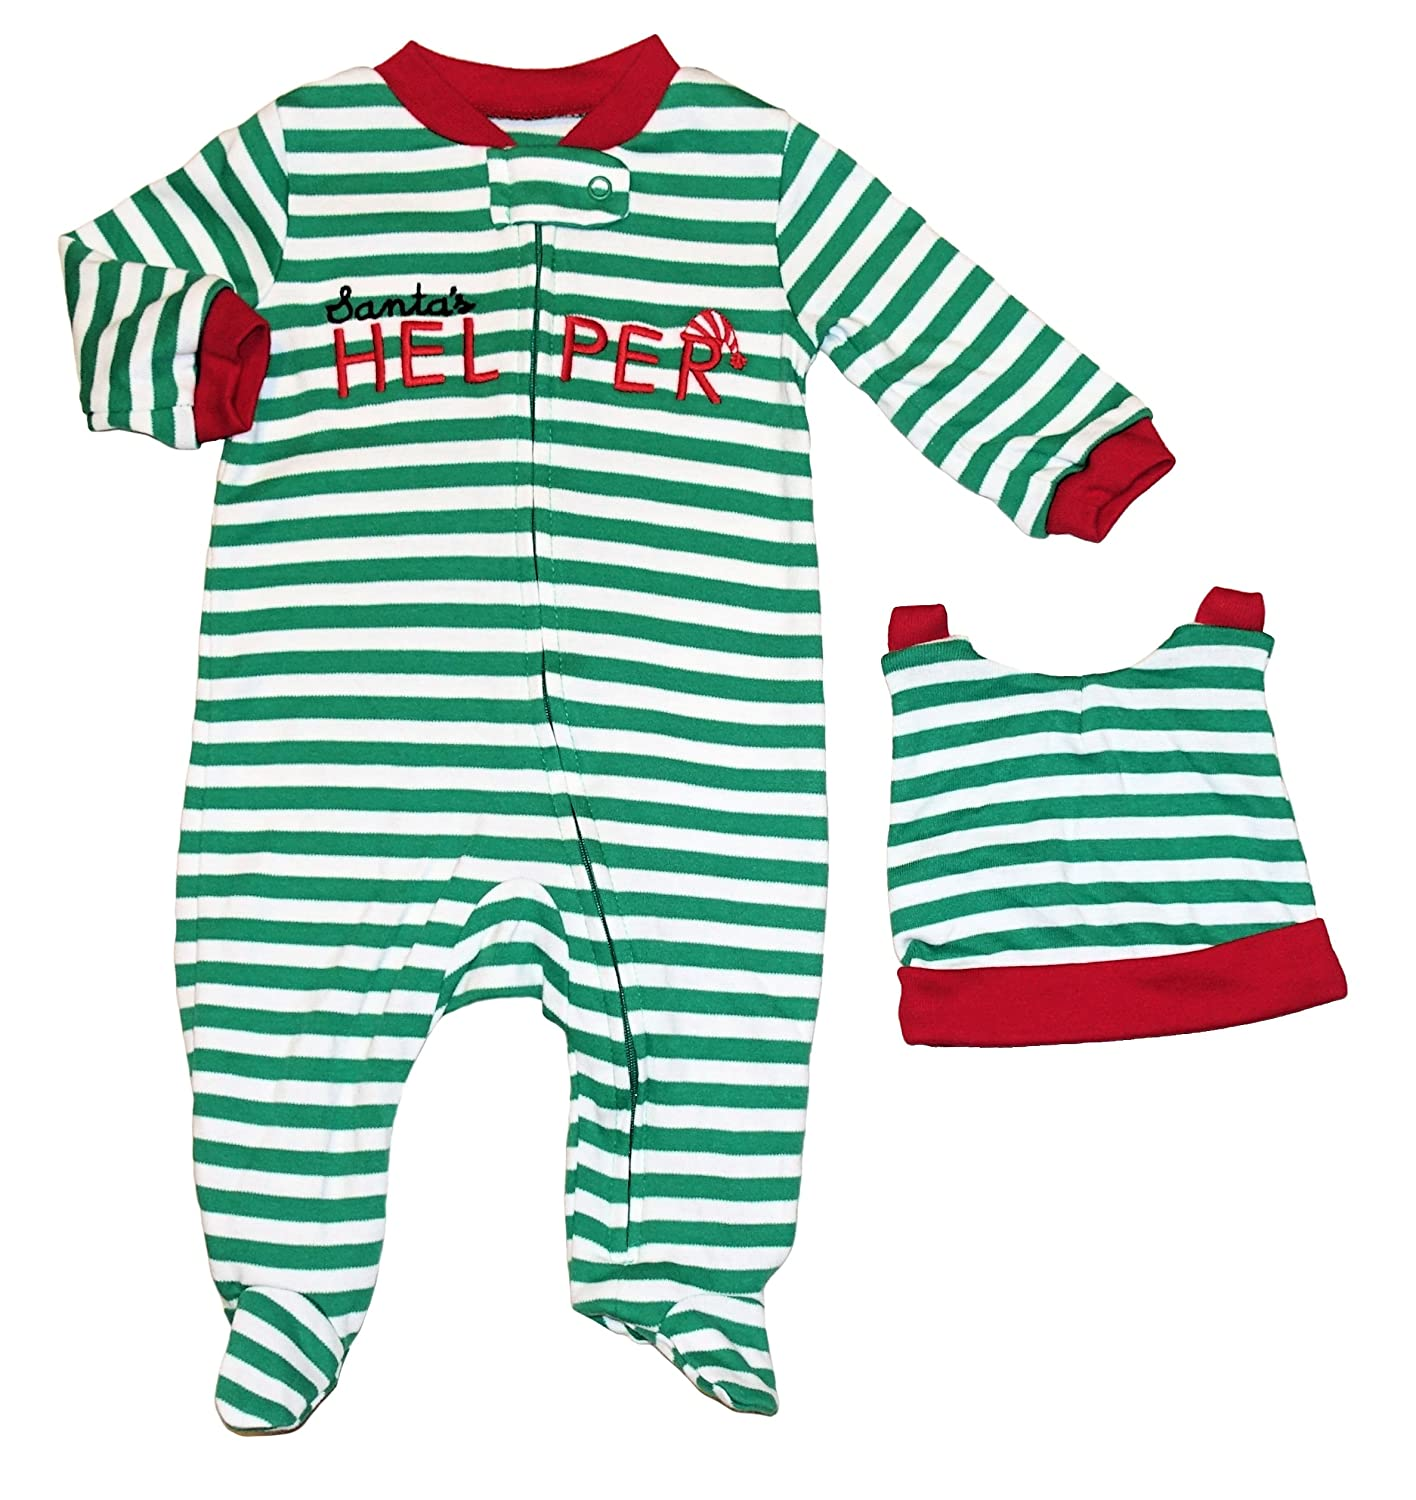 ef0c386fa1 Amazon.com  Carter s Just One Year Baby Boys  Long-Sleeve Footed Blanket  Sleeper (3 Months)  Clothing